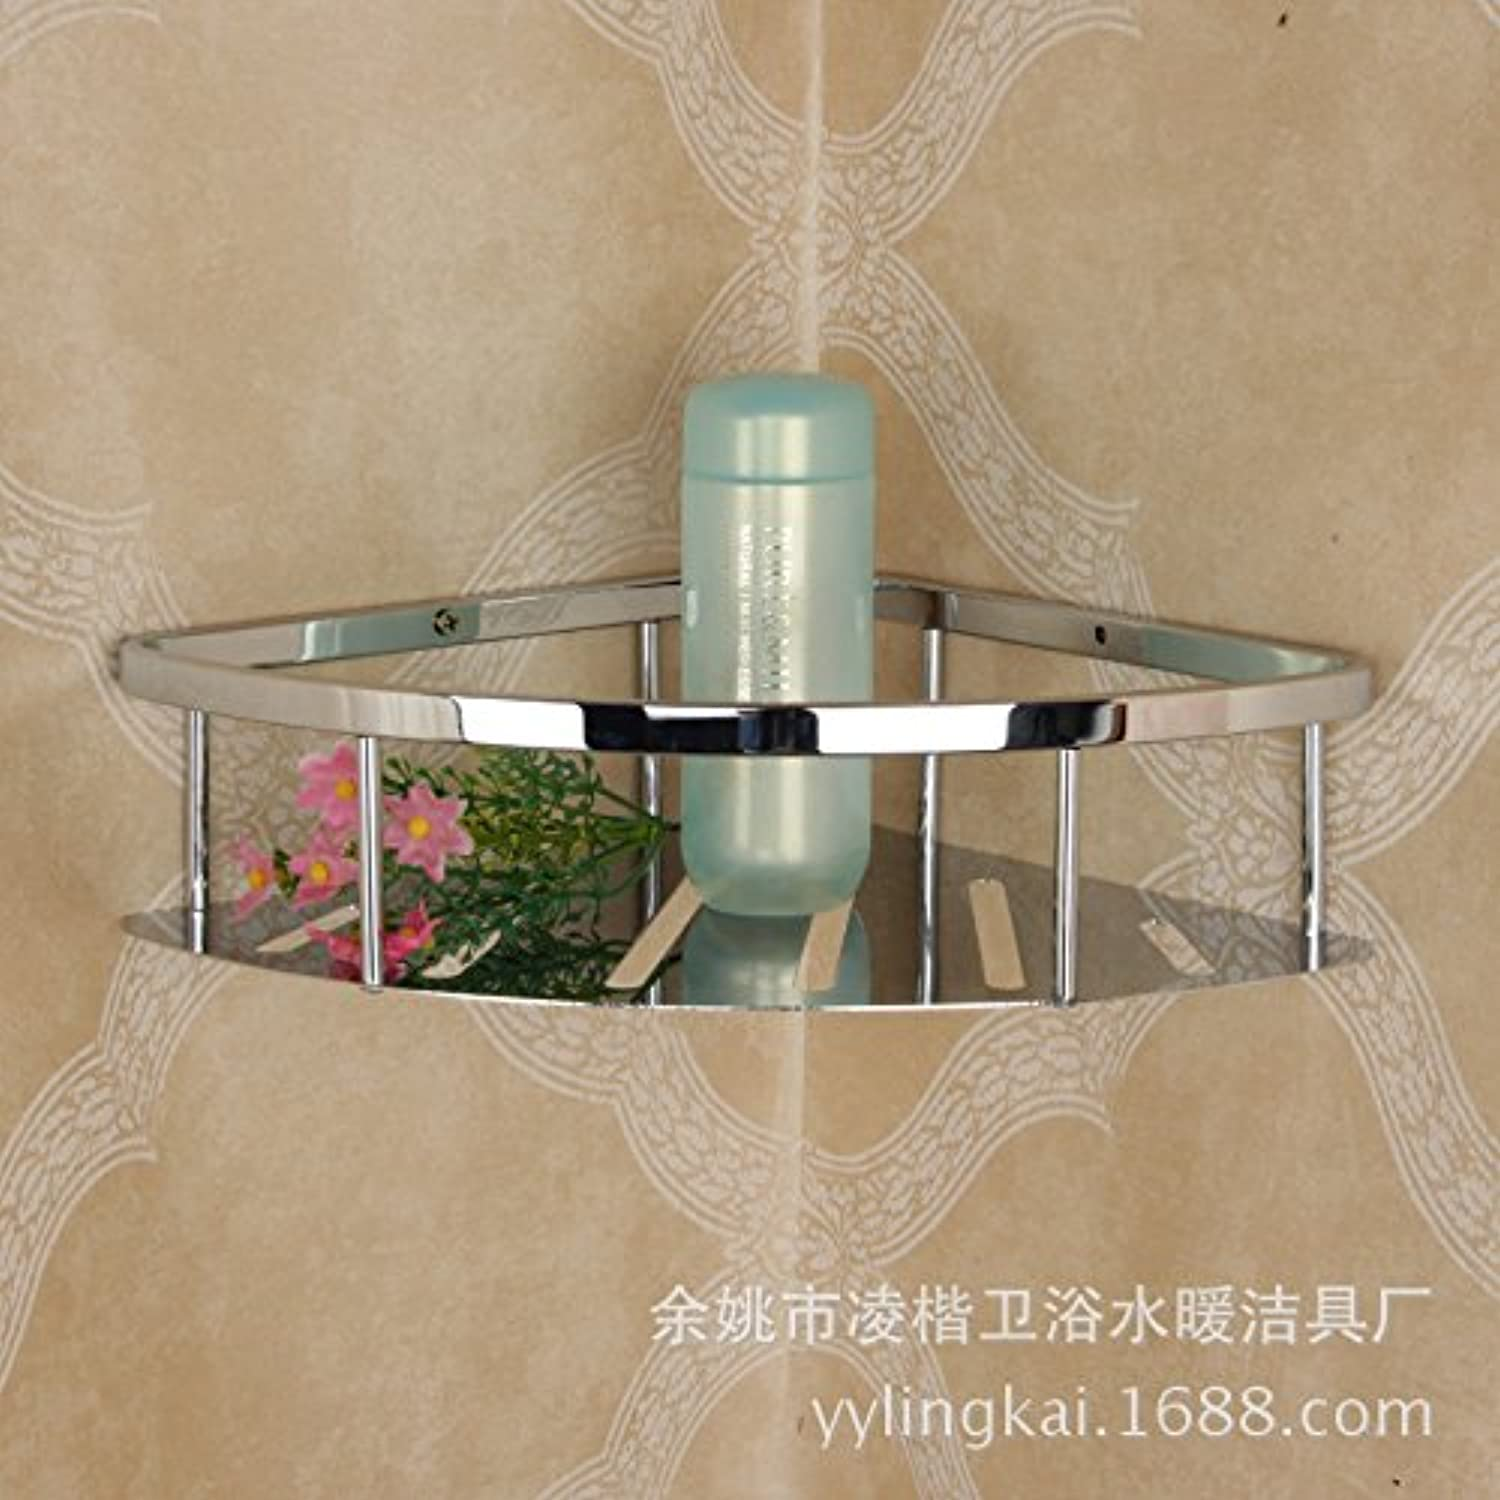 Stainless steel single tier bathroom rack triangular steel corner rack